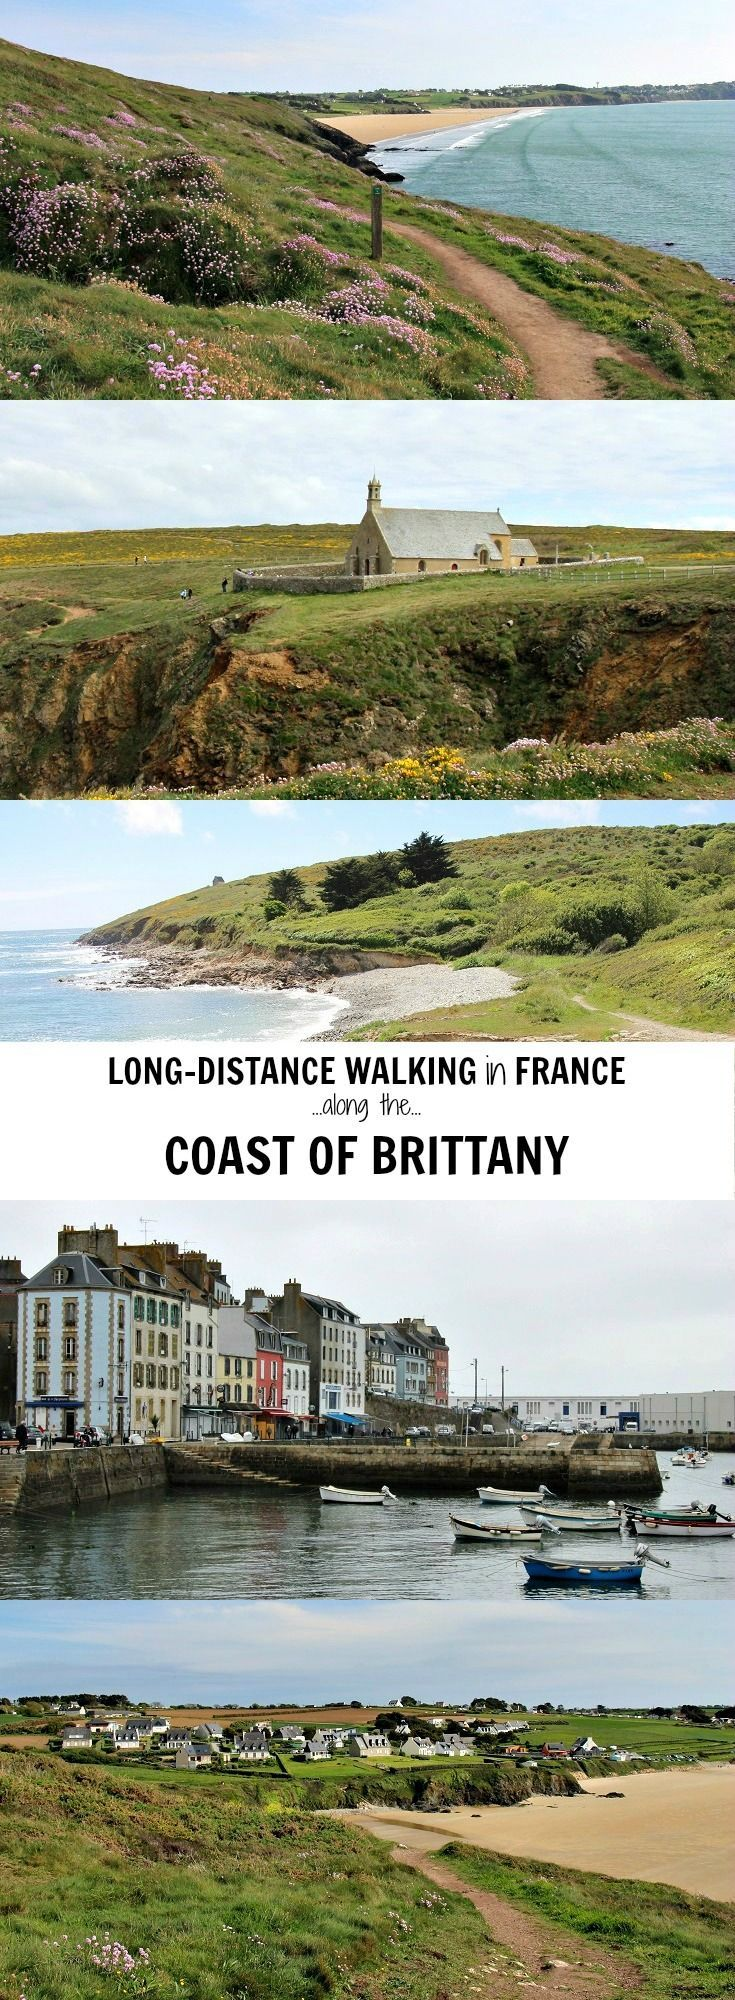 Explore rural France on a 11-day walk following the GR 34 along the coast of Brittany from Camaret-sur-Mer to Audierne.